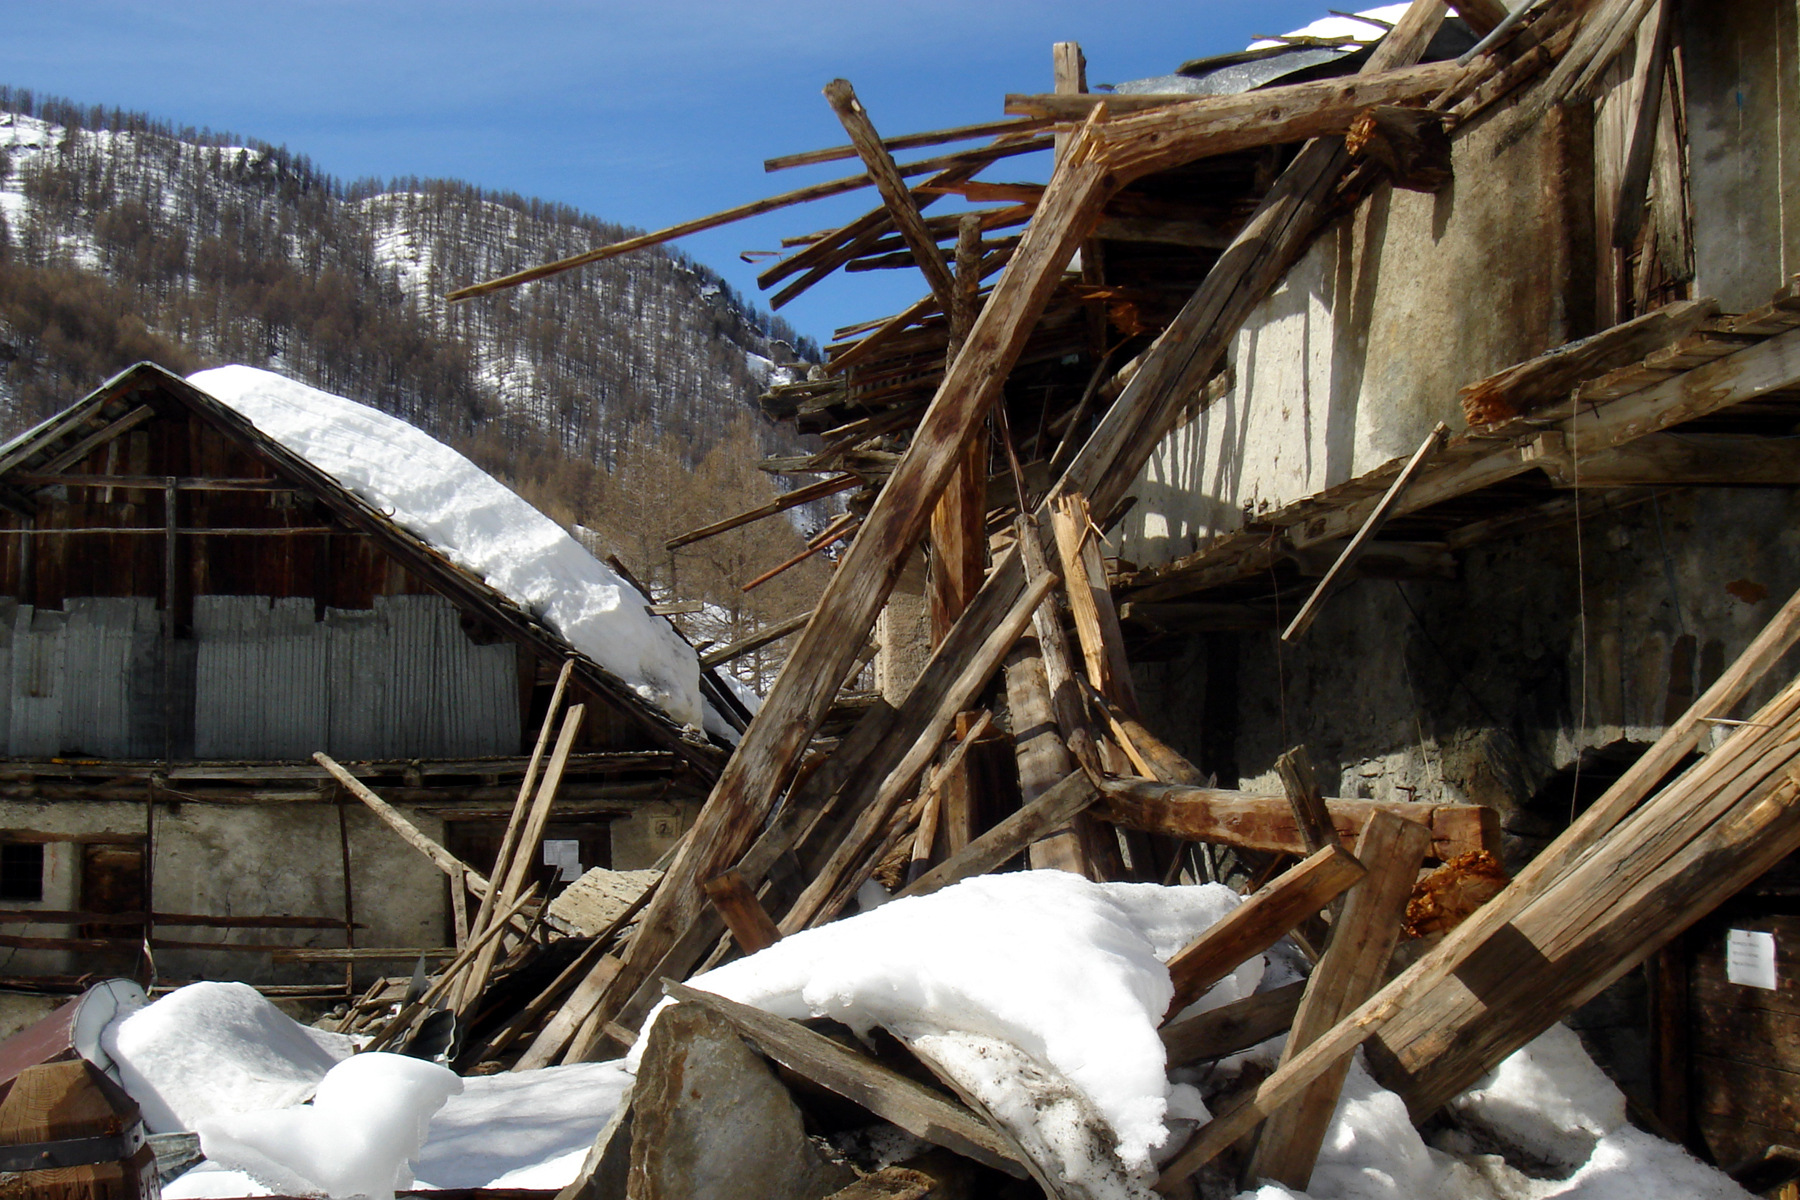 Remains of a village we skied to that was destroyed by a huge avalanche over 100 years ago.